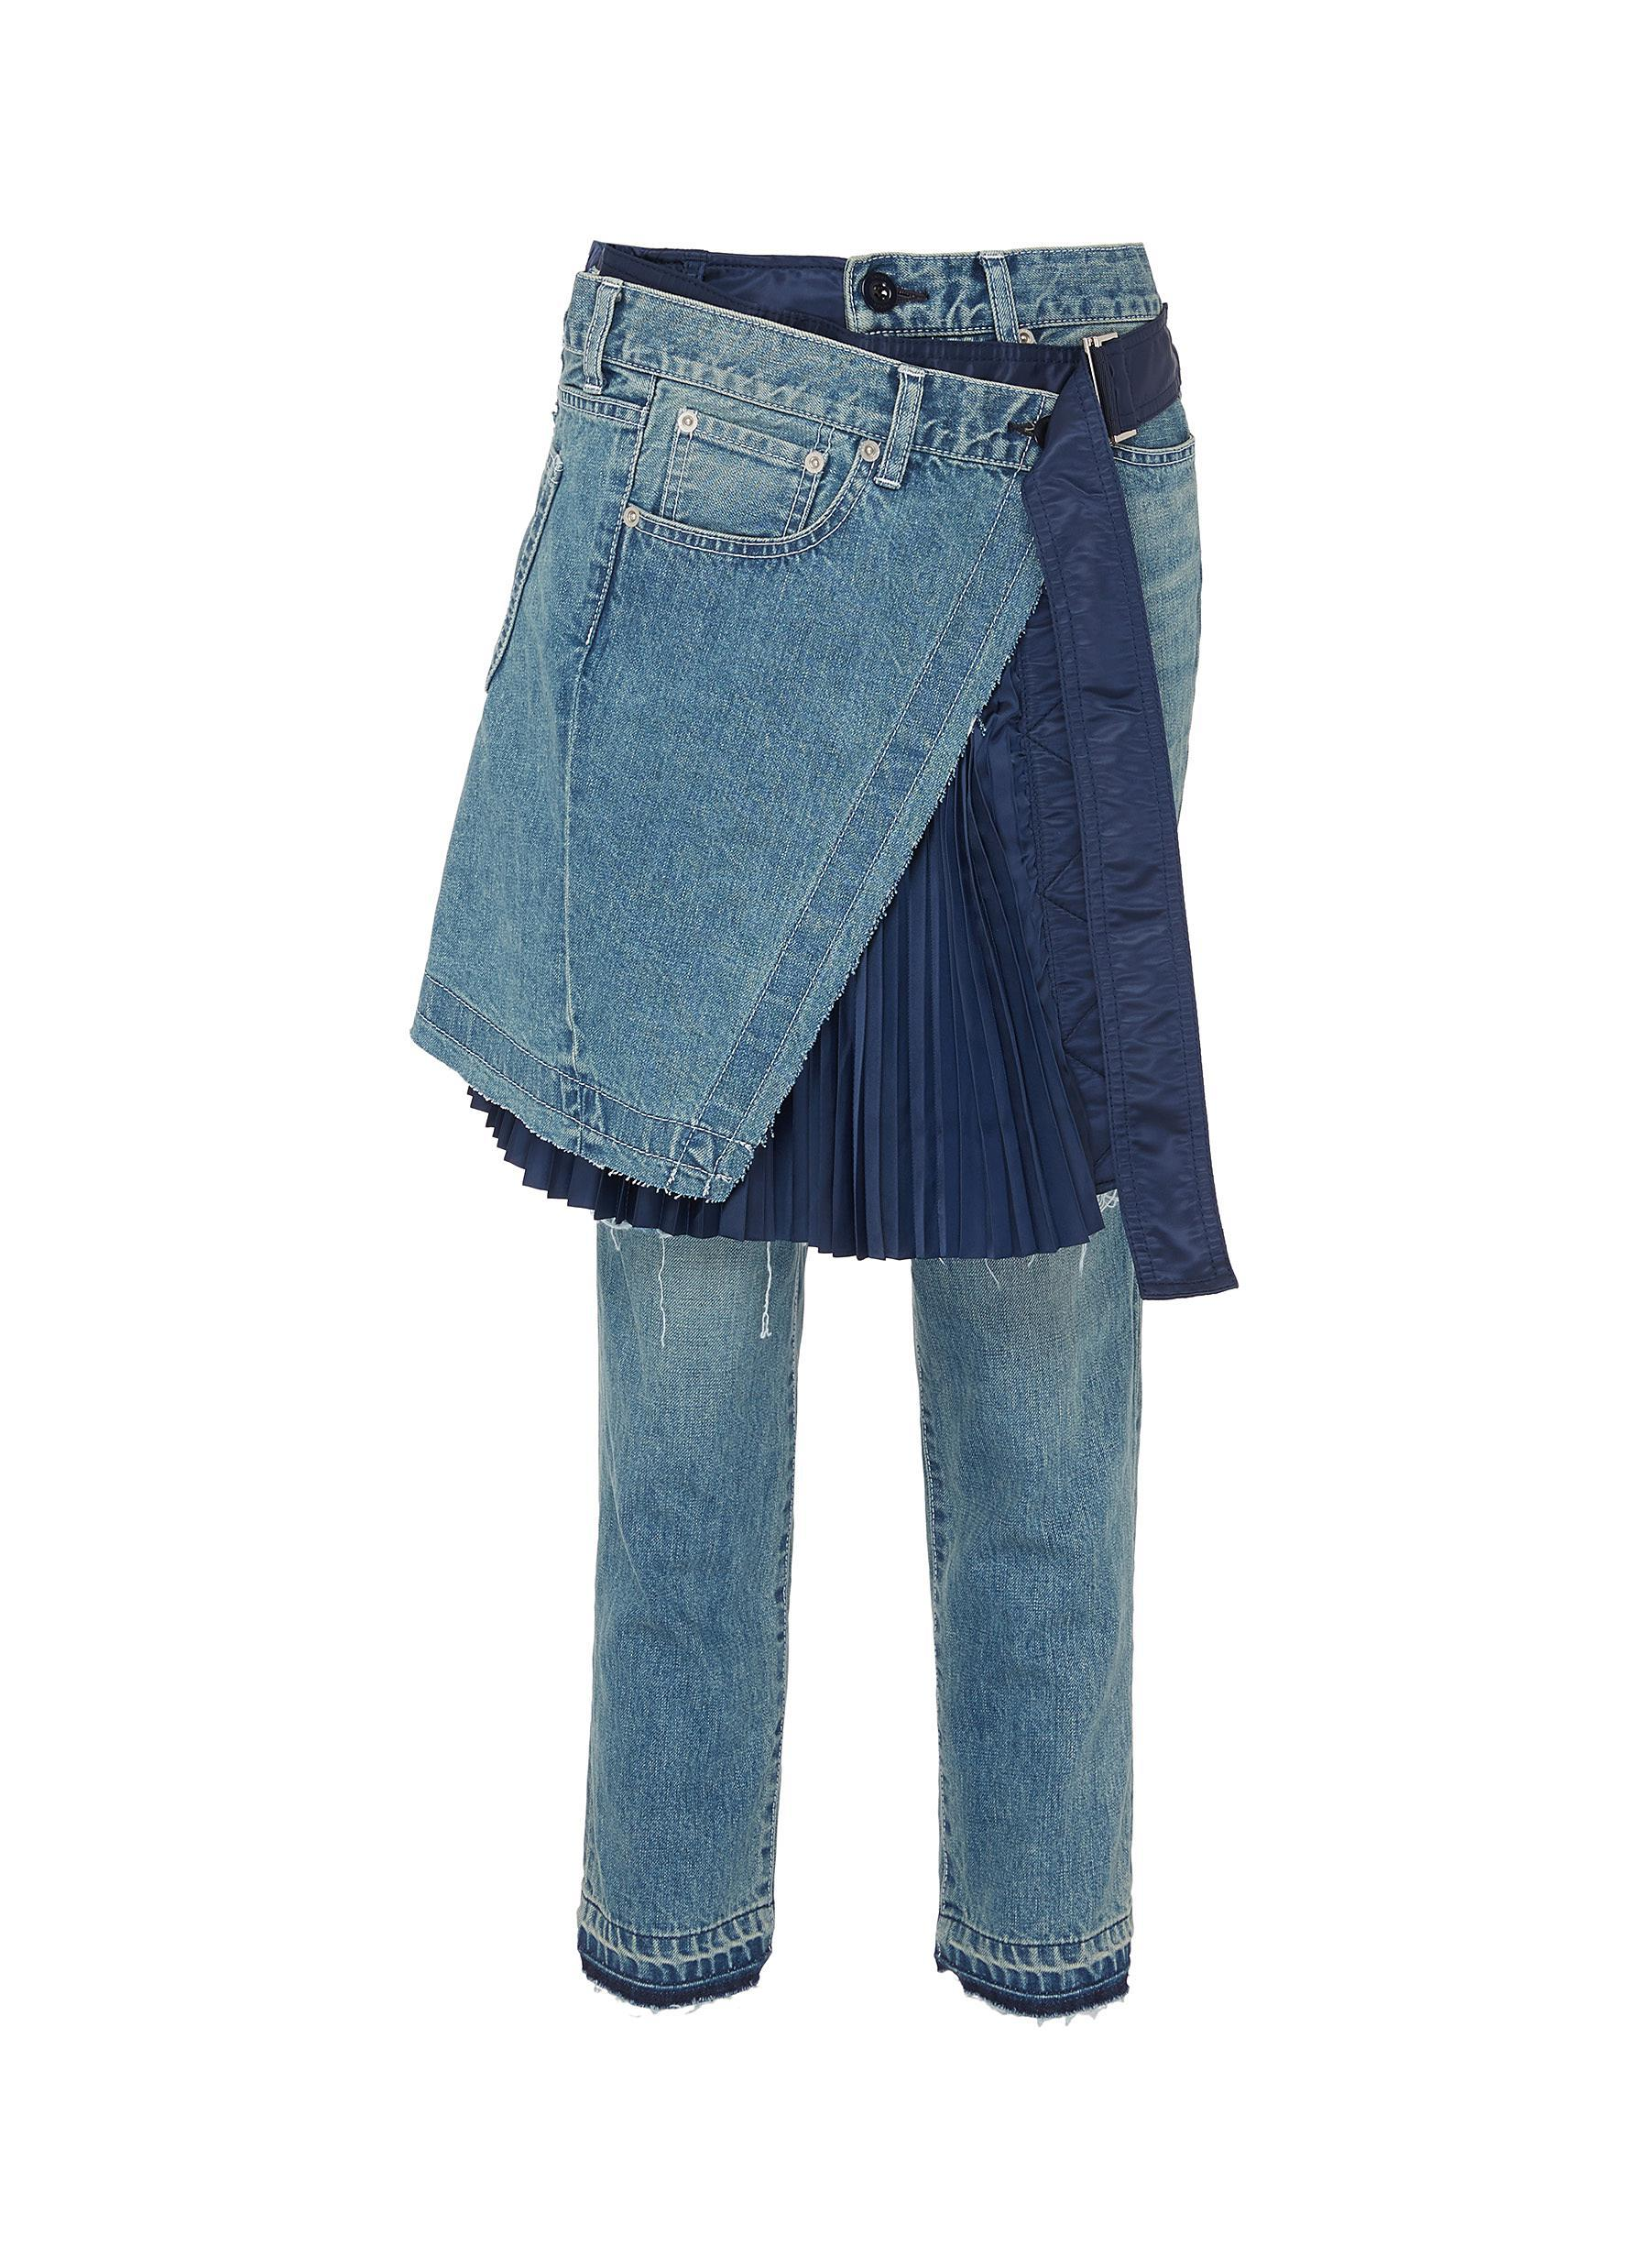 Sacai Denim Pleated Skirt & Jeans Combo in Blue